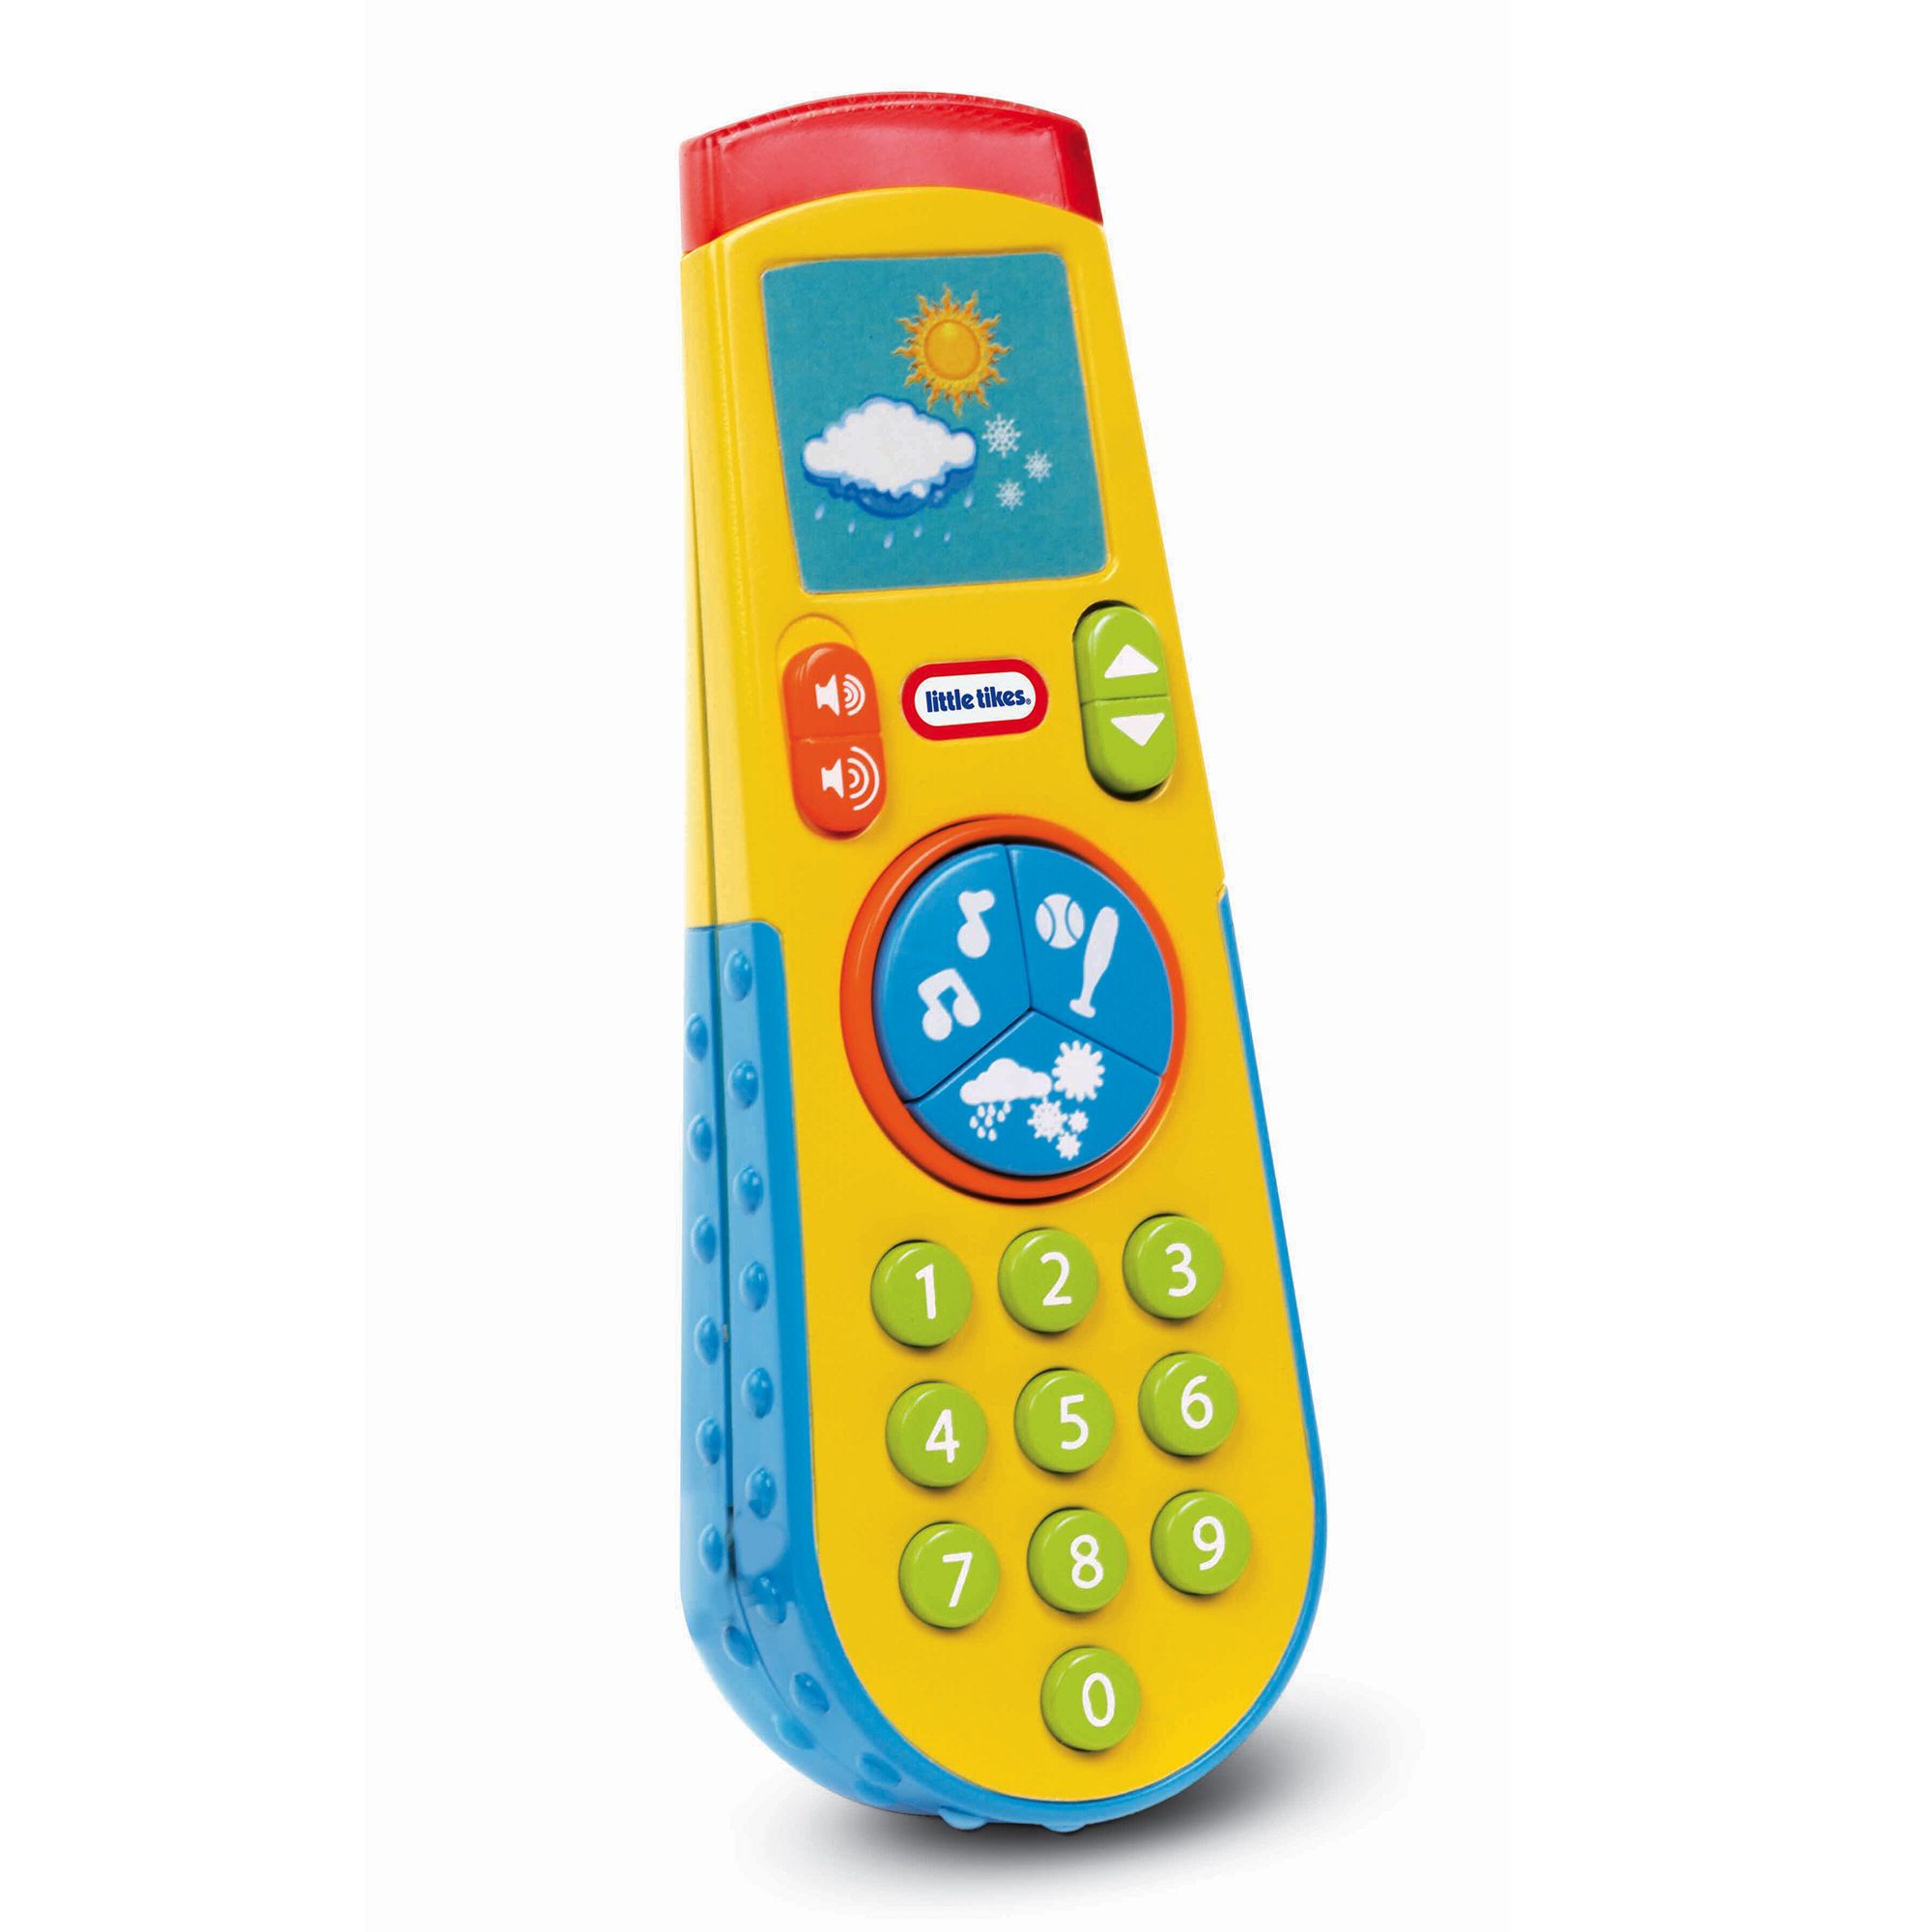 Little Tikes Discover Sounds Remote - Baby  Birthday Your Baby Gifts - Girls - 6-12 months